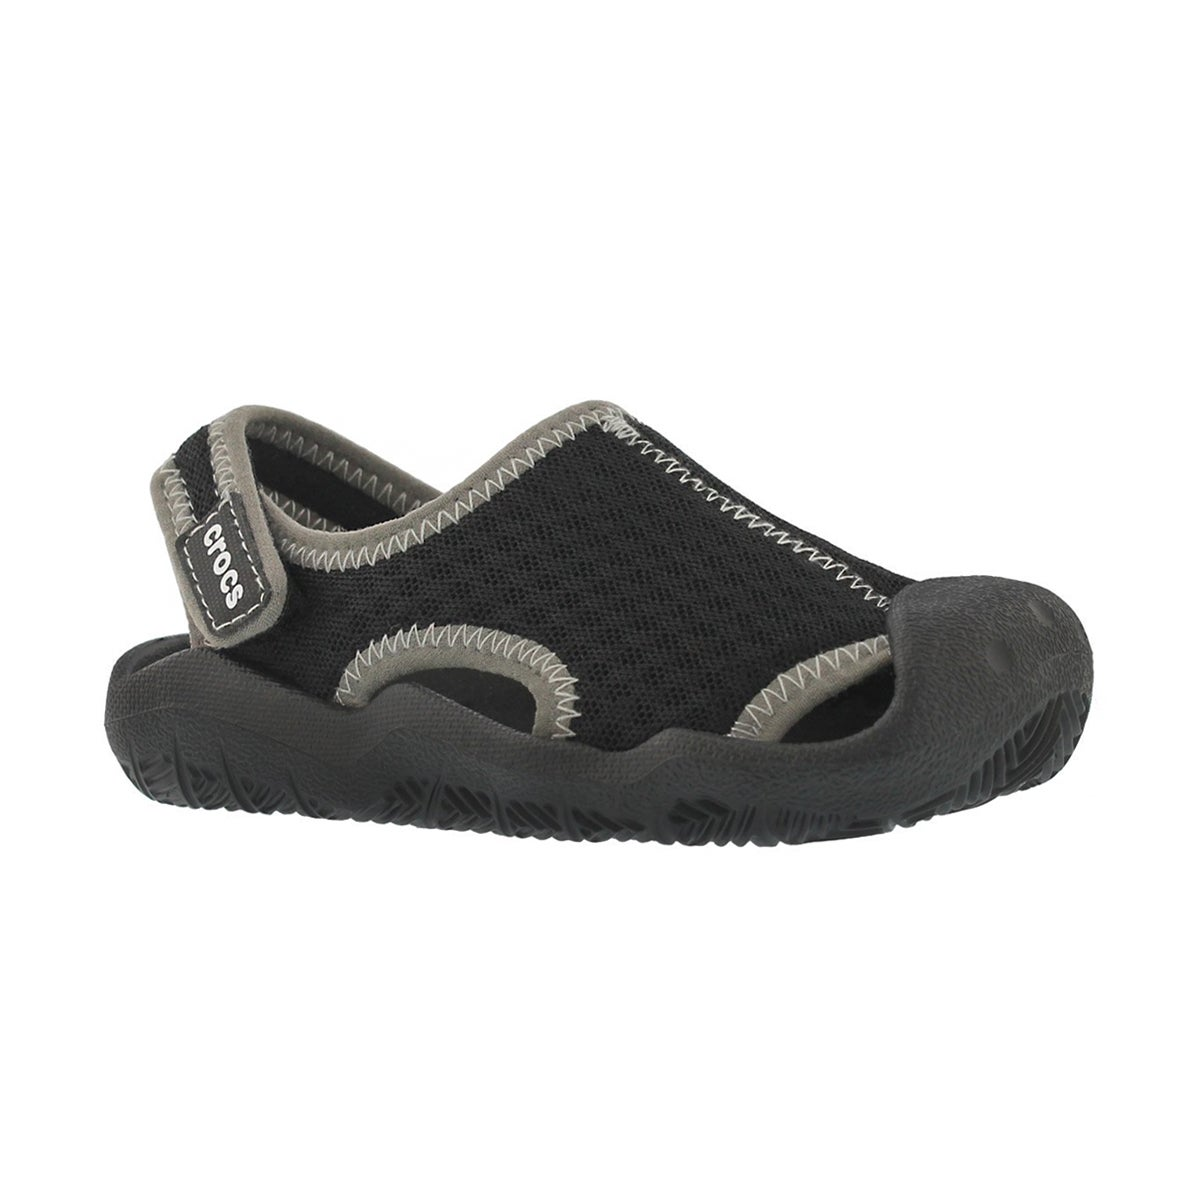 Bys Swiftwater blk/wht casual sandal